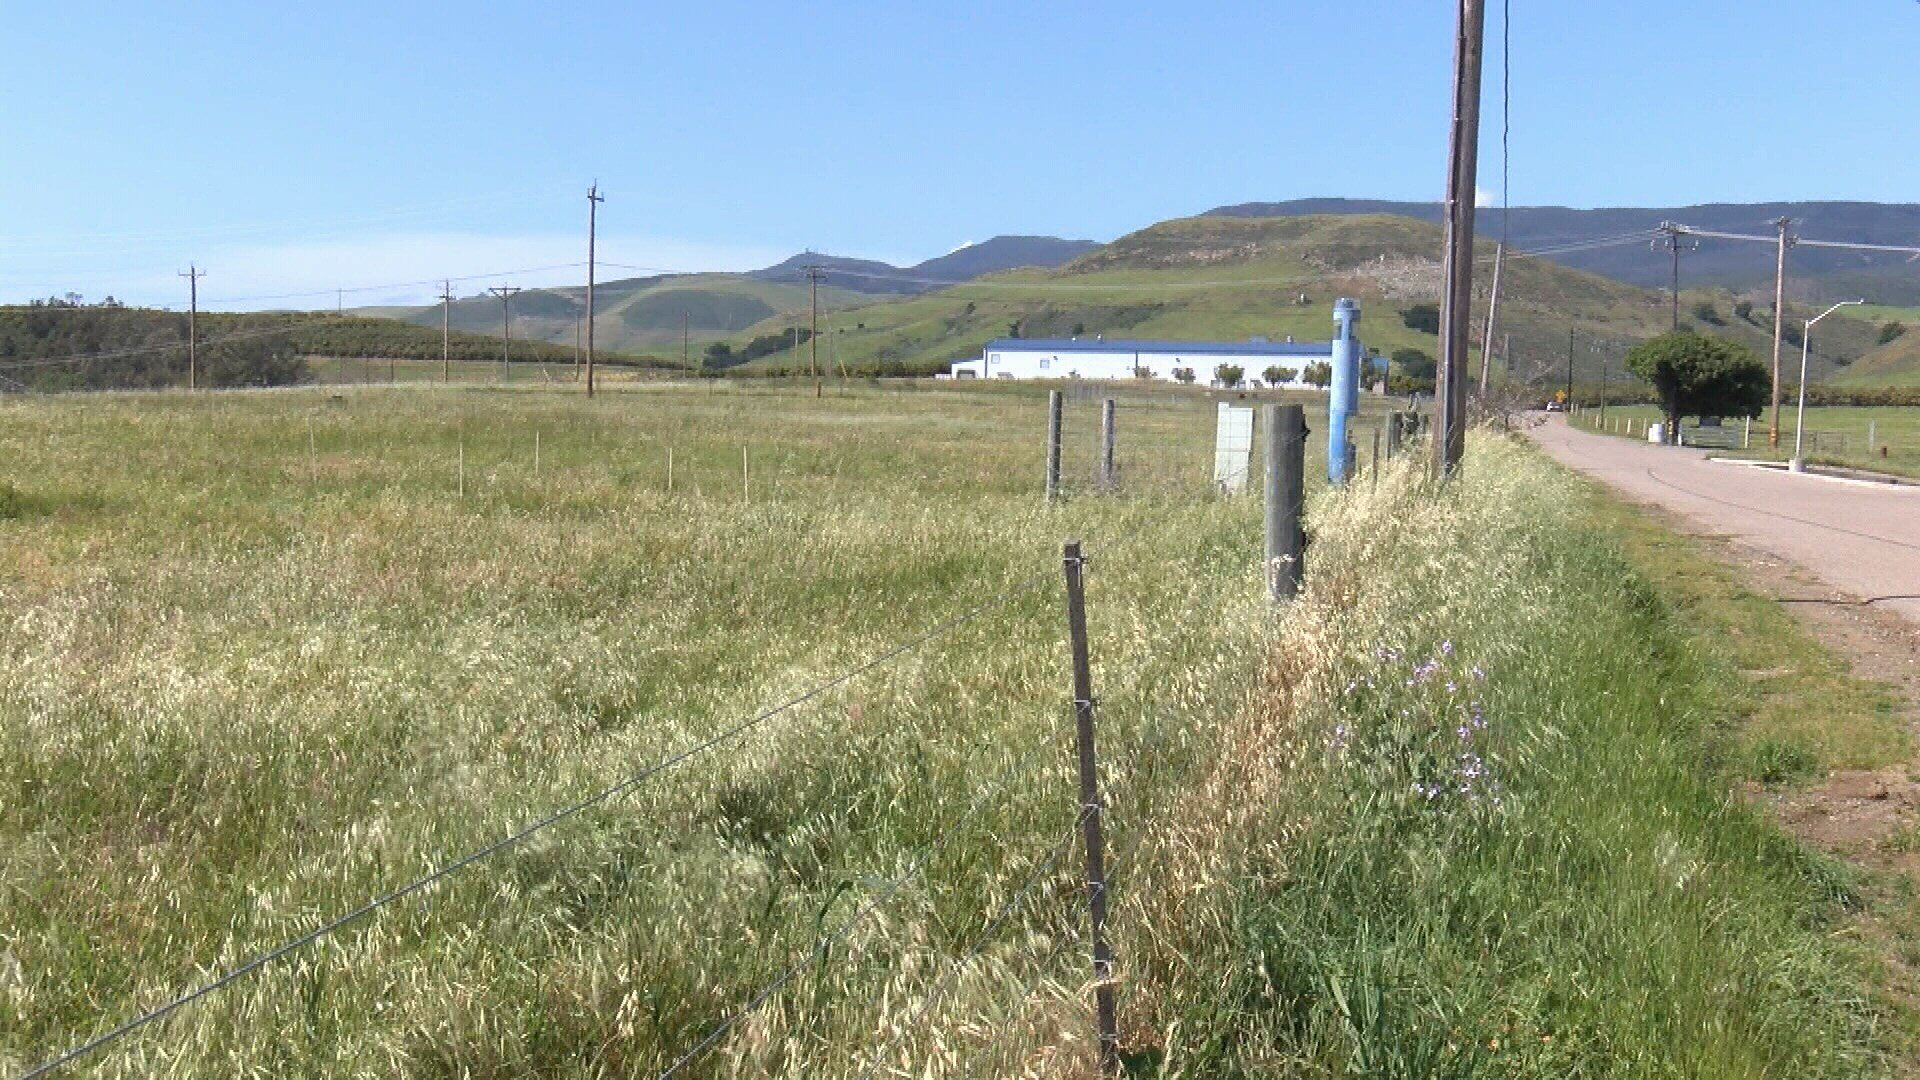 Future location of the Solar Farm on Cal Poly's campus. (KSBY photo)